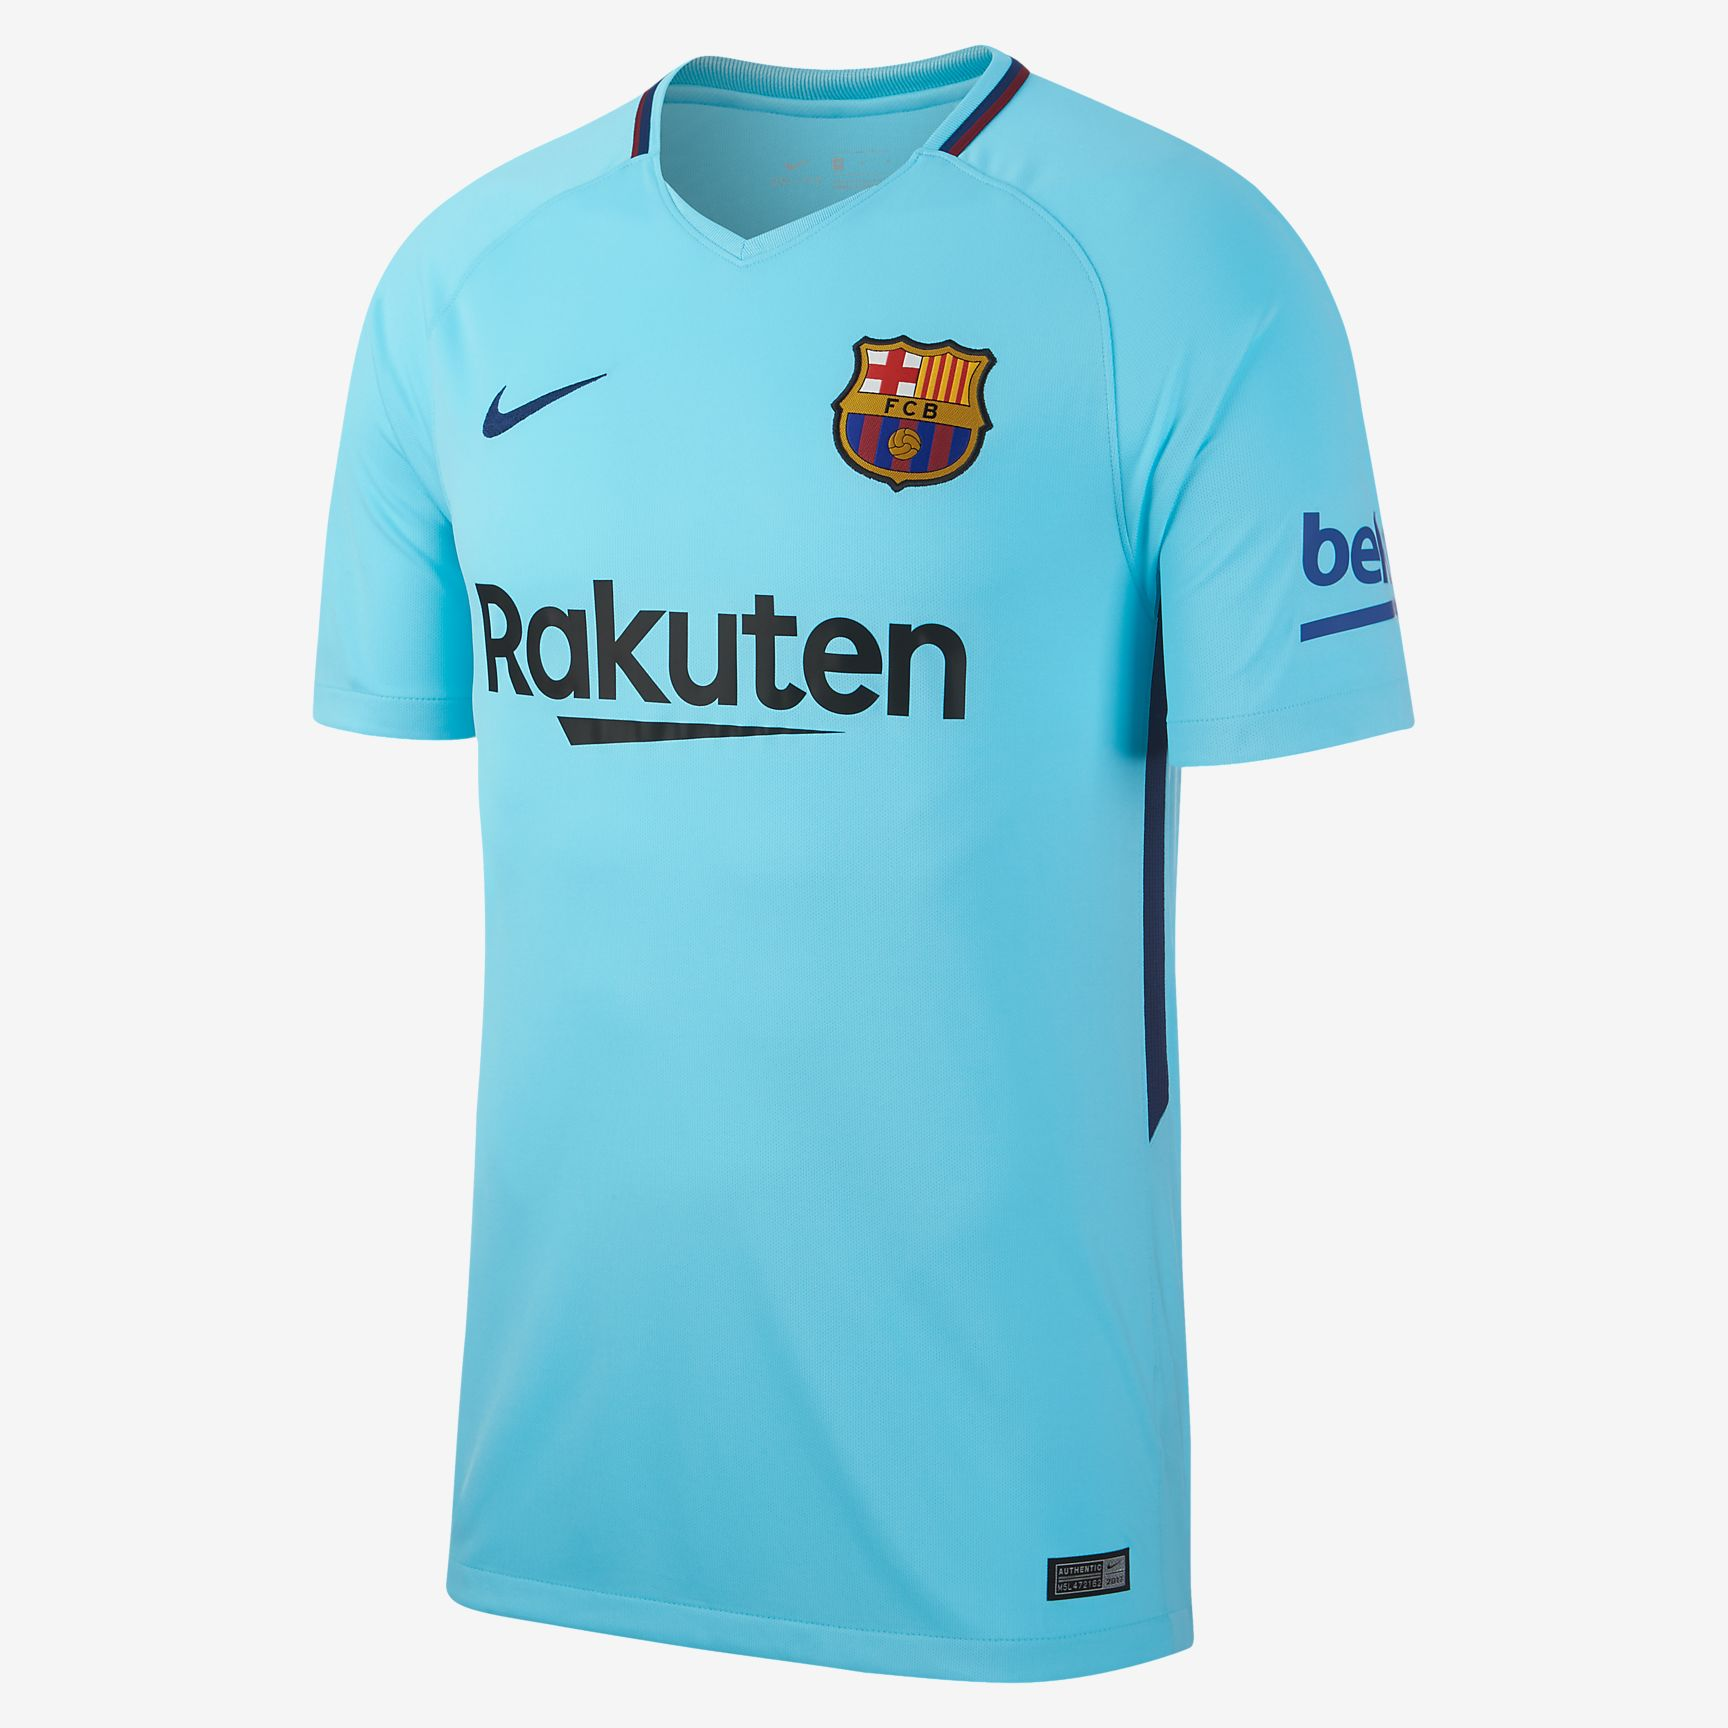 uk availability c4049 a7eed Nike FC Barcelona 17-18 Stadium Away Jersey - Soccer Shop ...